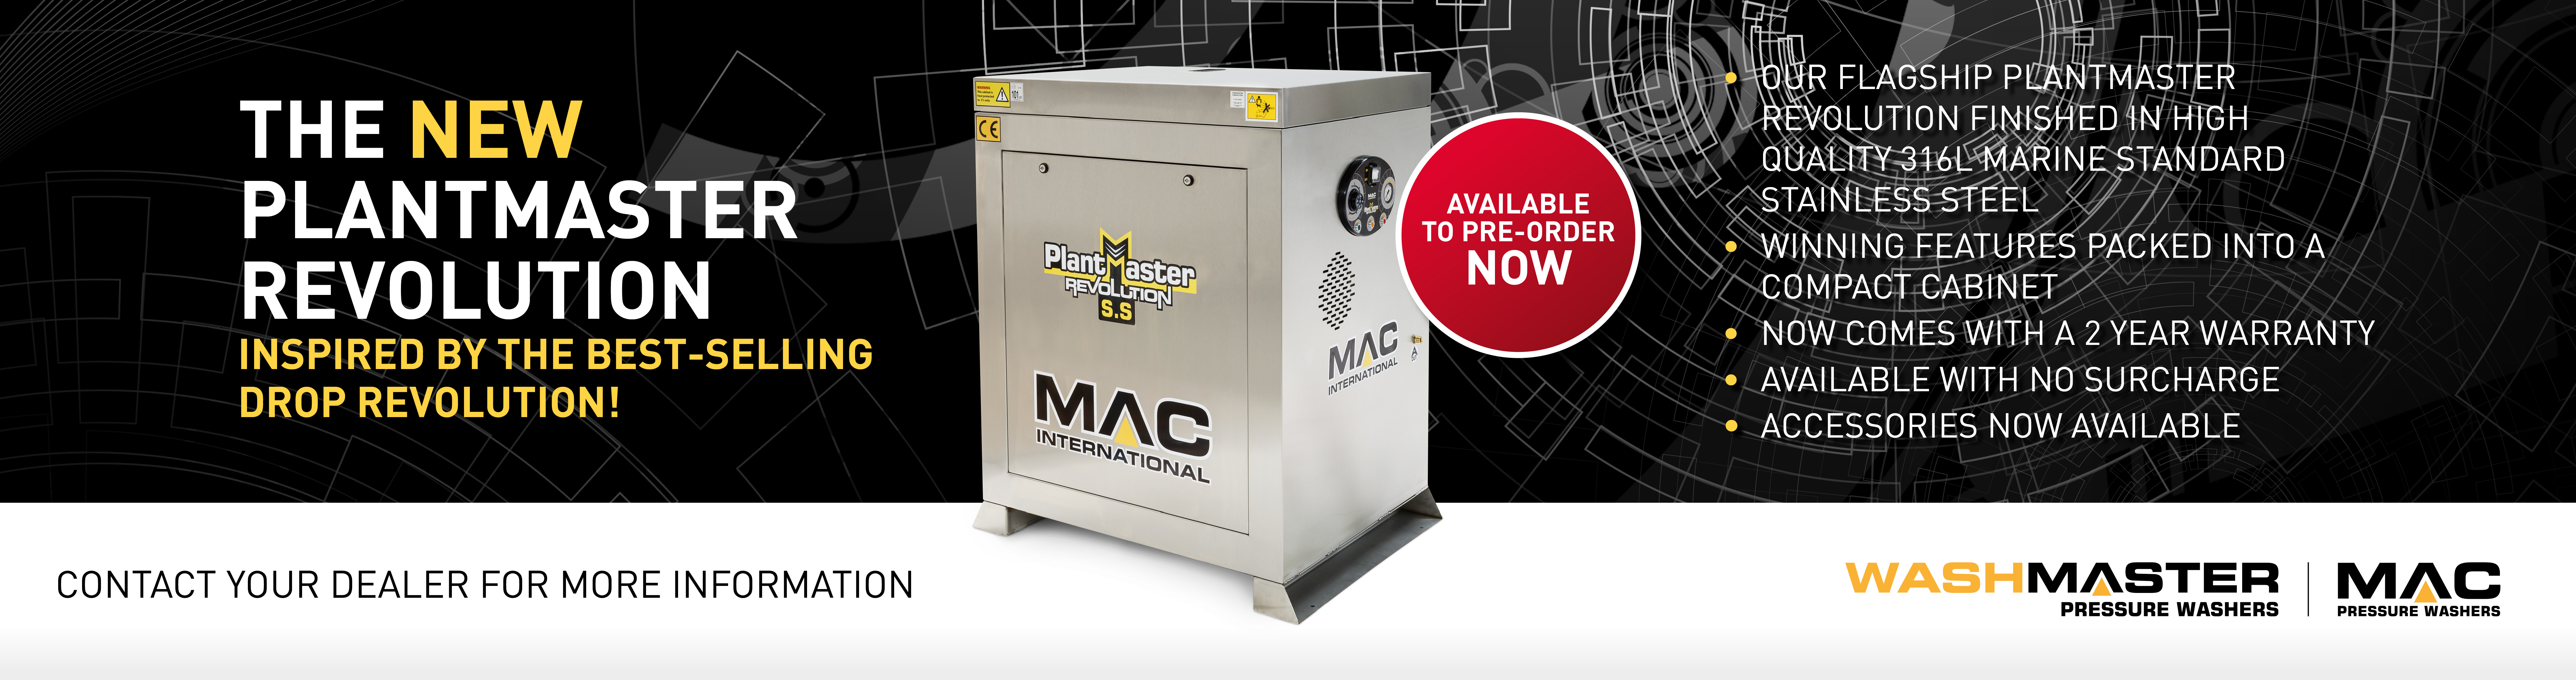 The New Stainless Steel MAC Plantmaster Revolution Hot Static Pressure Washer